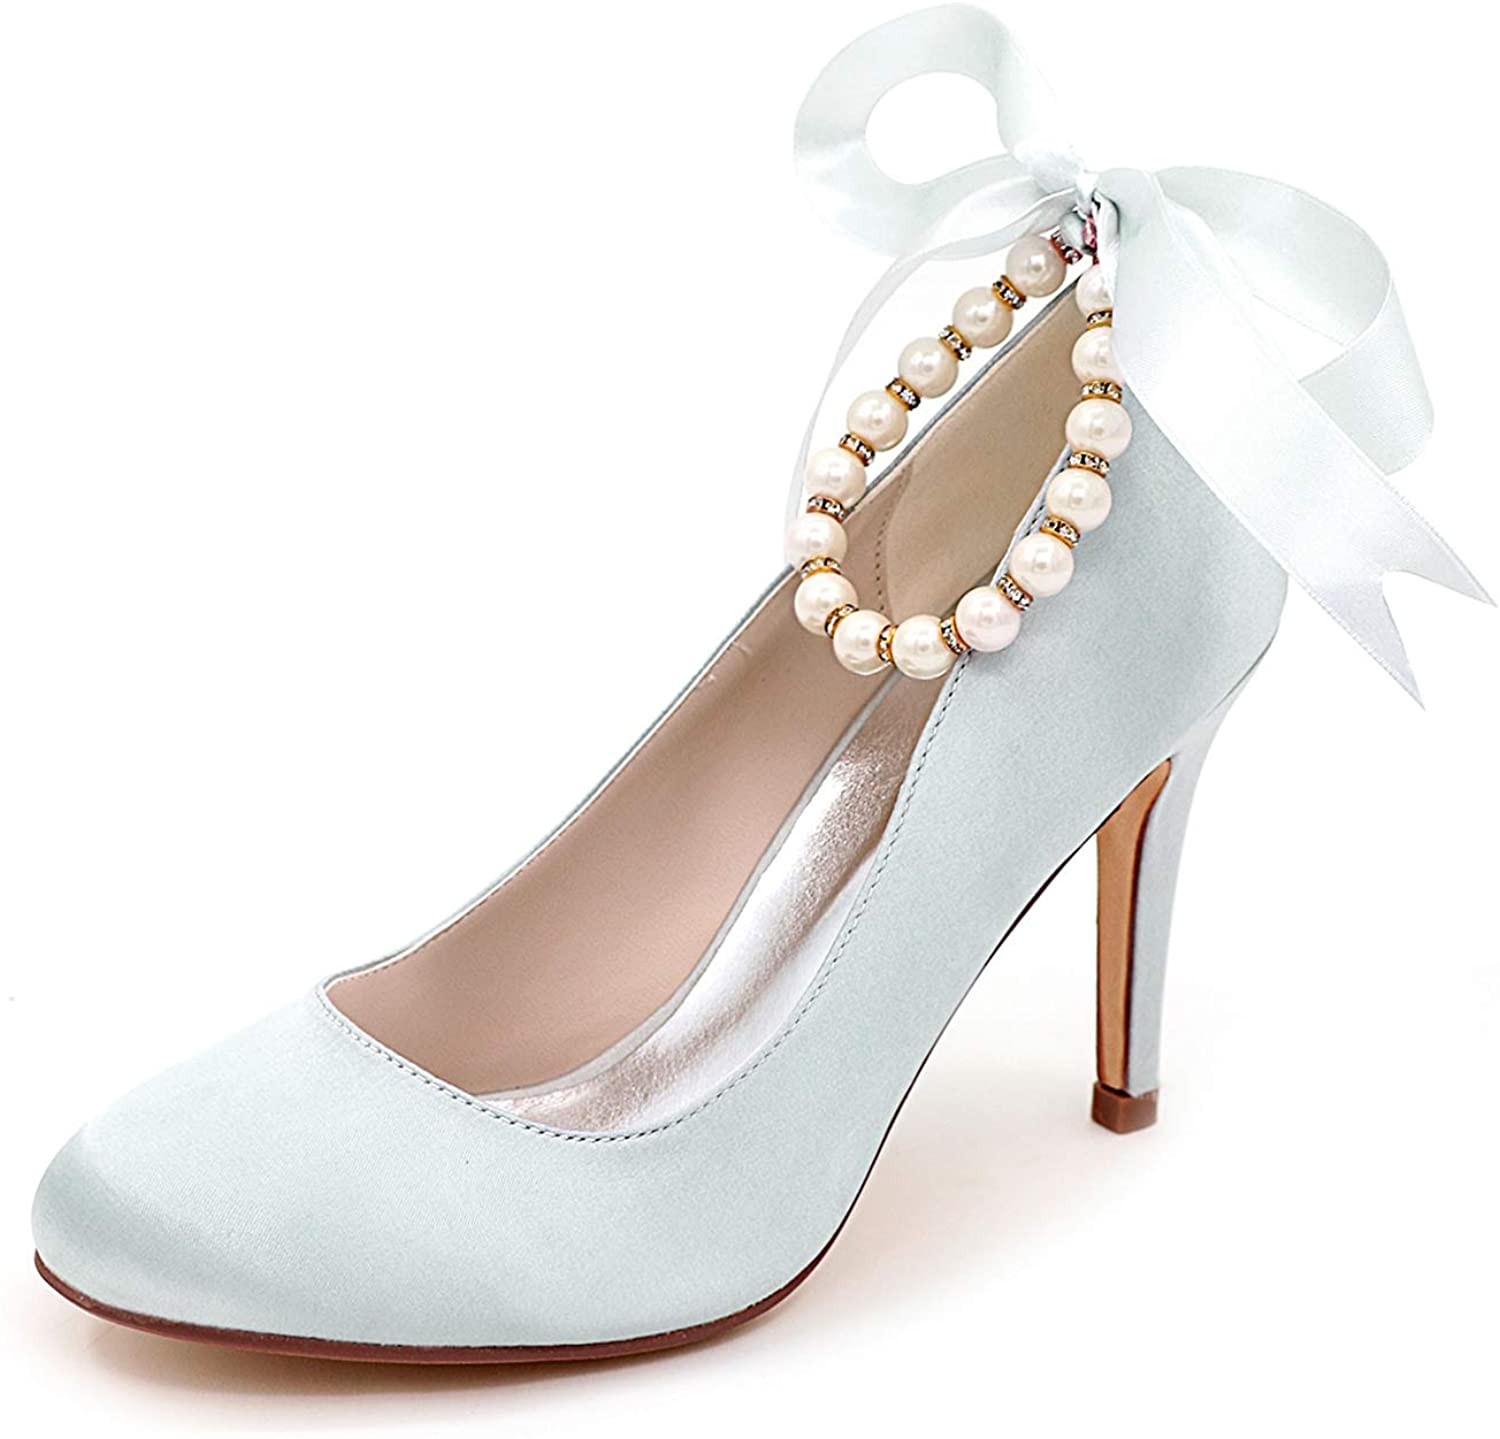 Women's bridal wedding shoes, lace-up formal party dress shoes, satin pearl high heels, women's wedding high heels, bridesmaid shoes